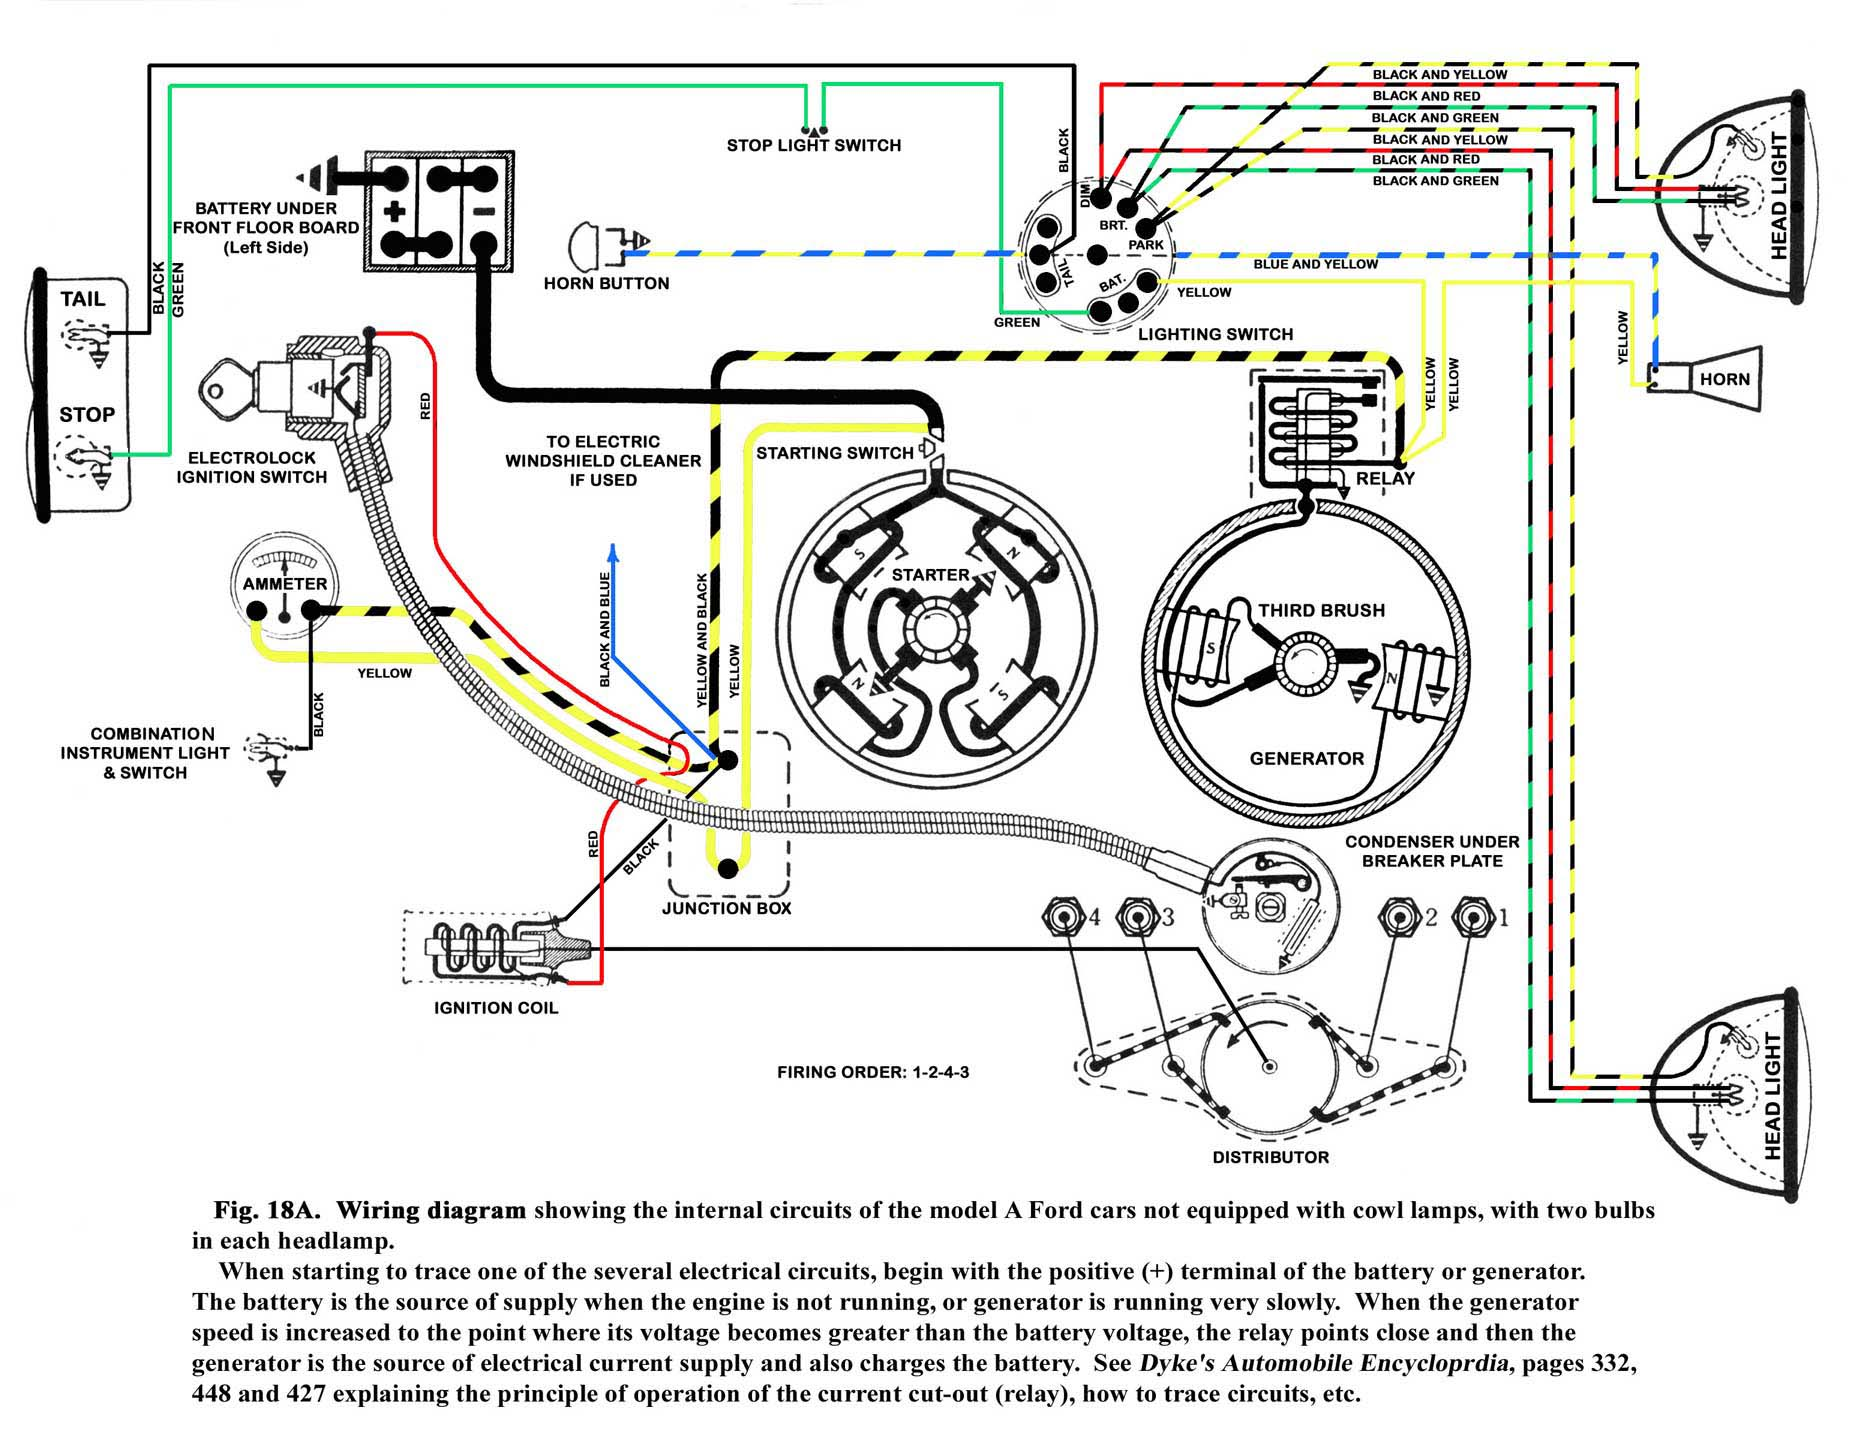 B3209 Ford 6 Volt Ignition Coil Wiring Diagram | Wiring ResourcesWiring Resources